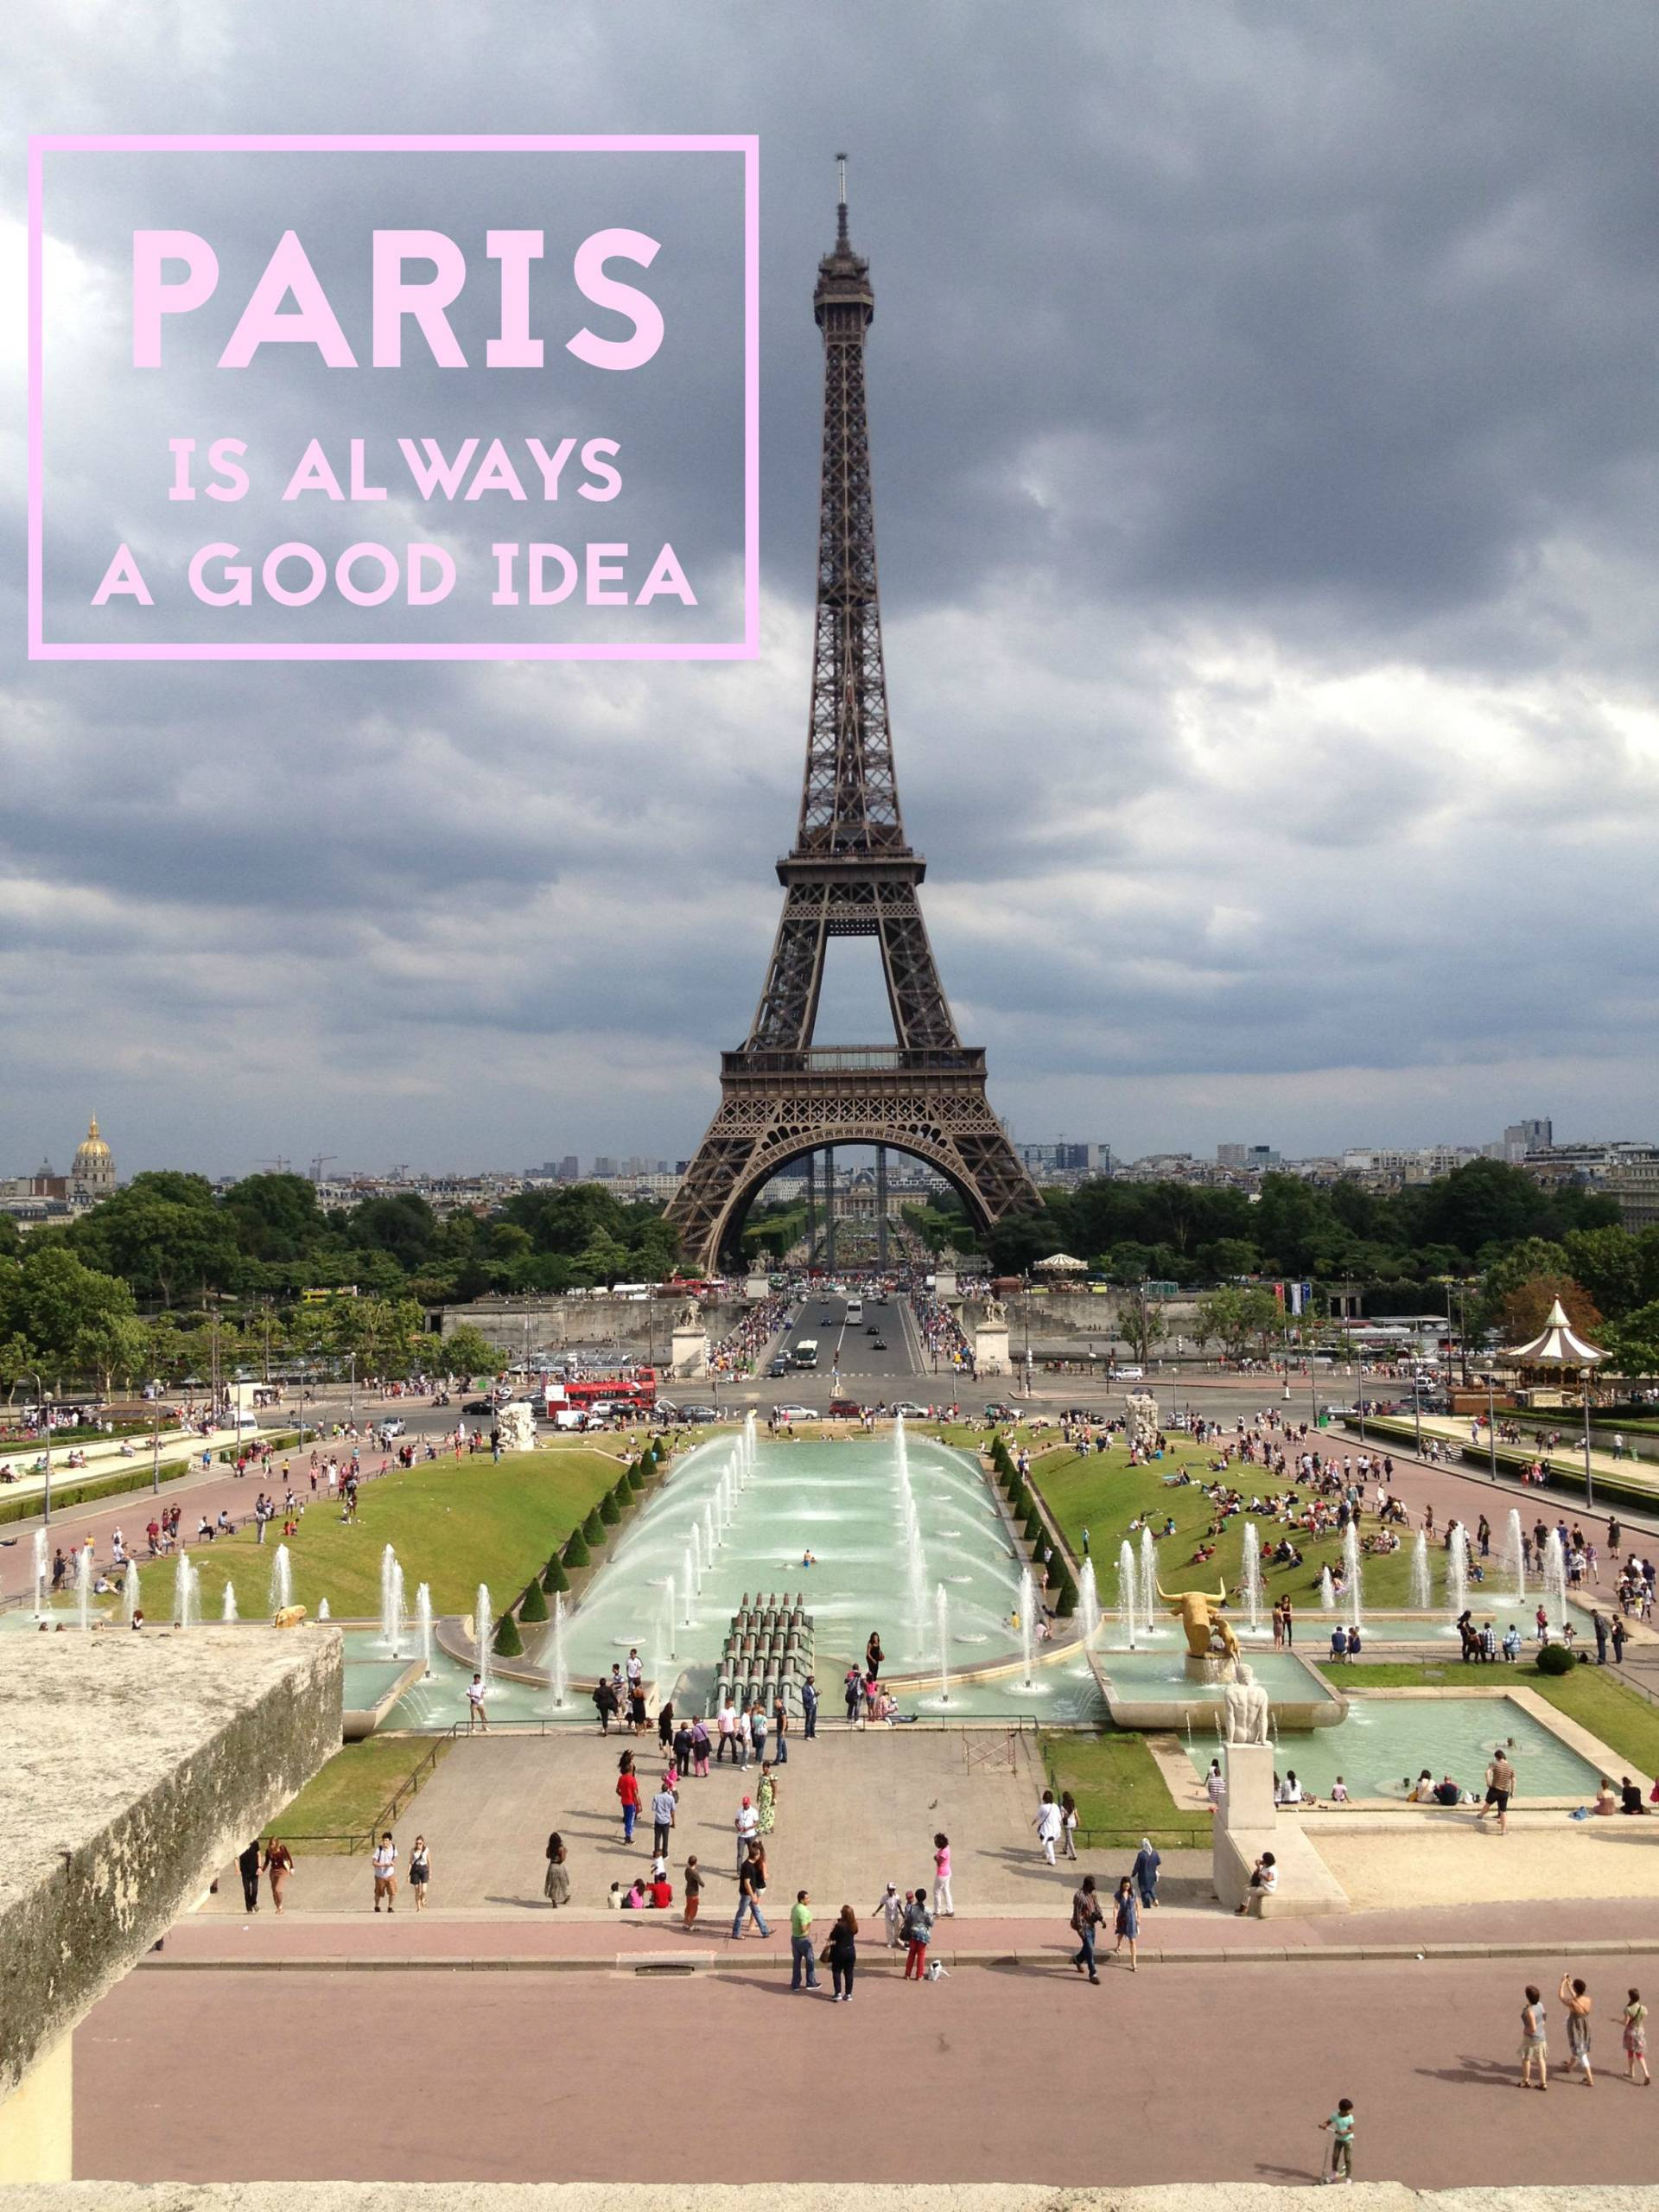 Paris travel quote